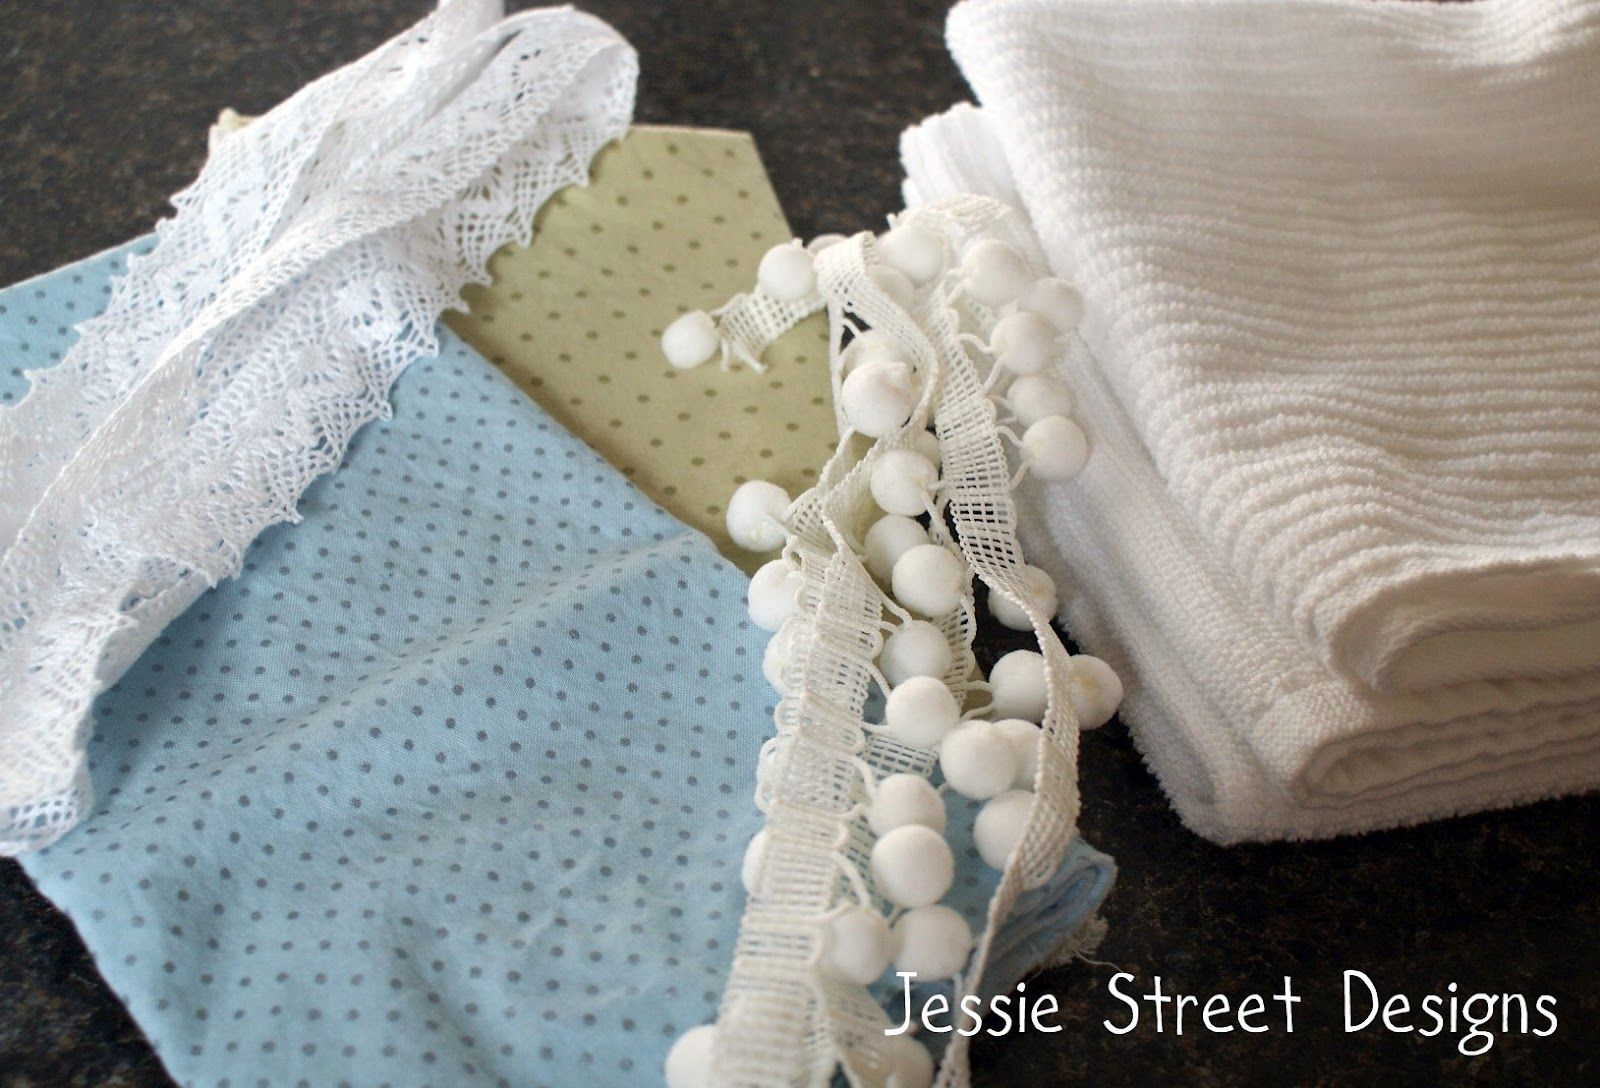 Tea Towel Tutorial by Jessie Street Designs